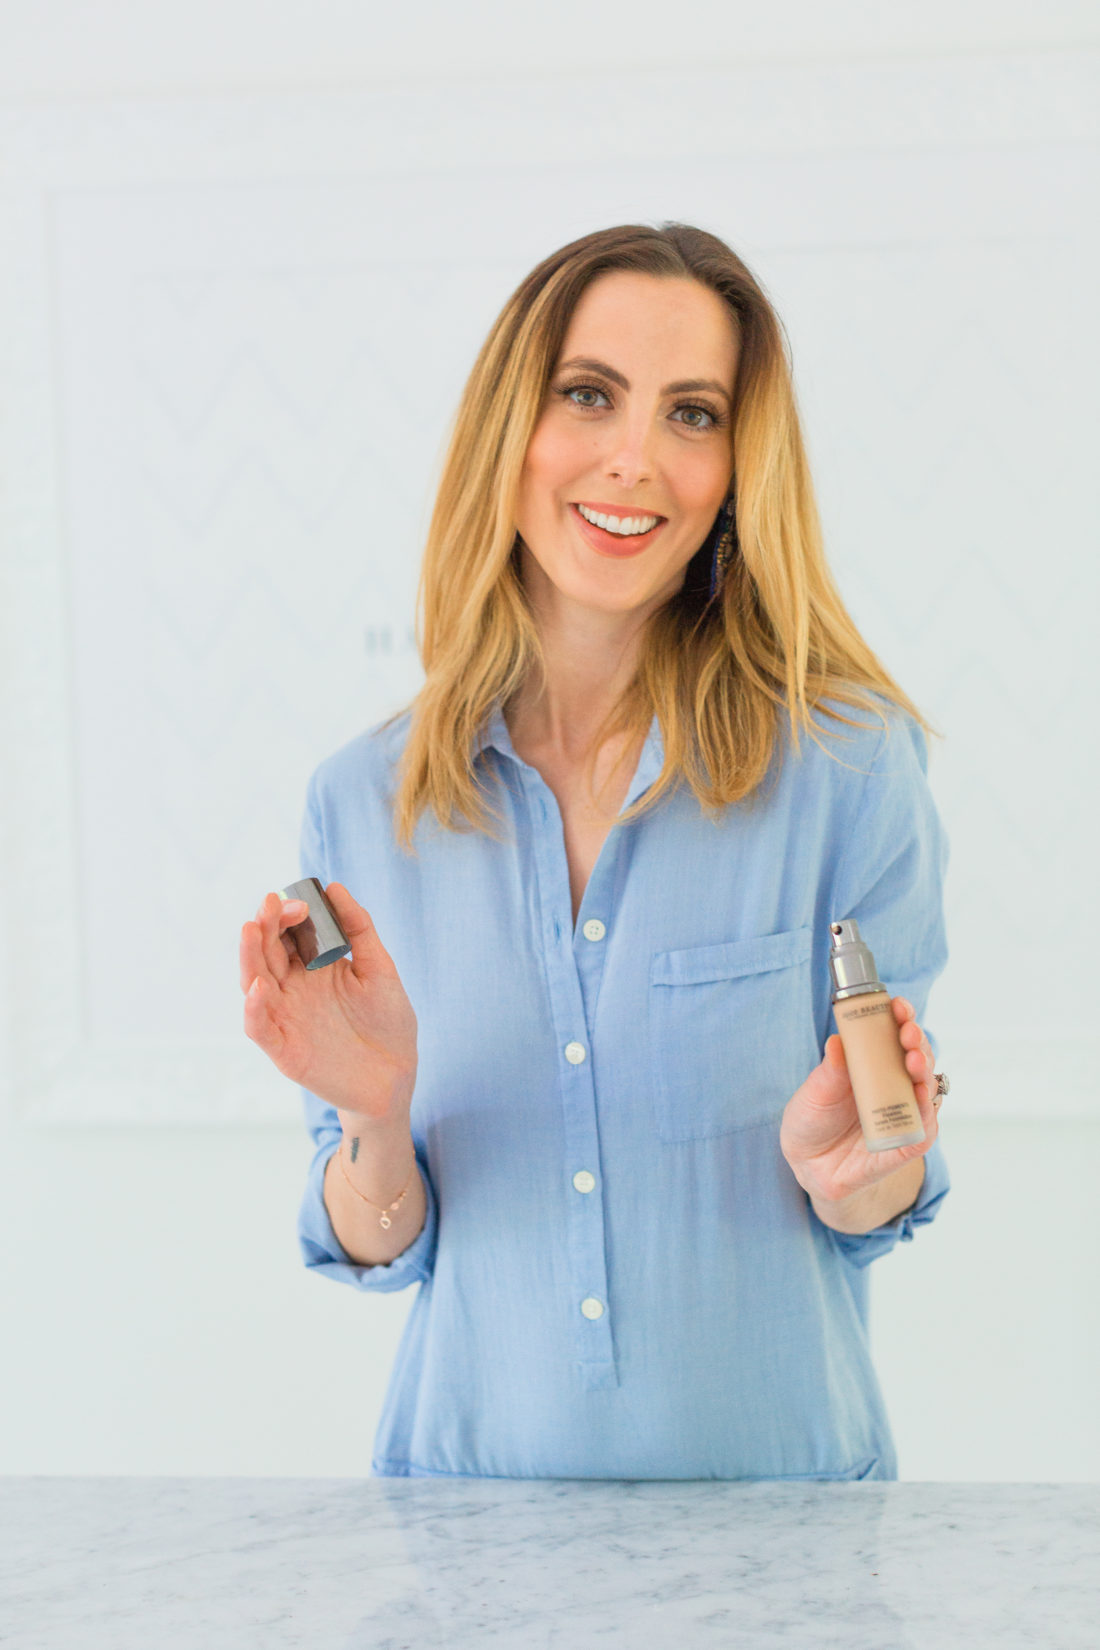 Eva Amurri Martino applies Juice Beauty serum foundation as part of her monthly obessions roundup